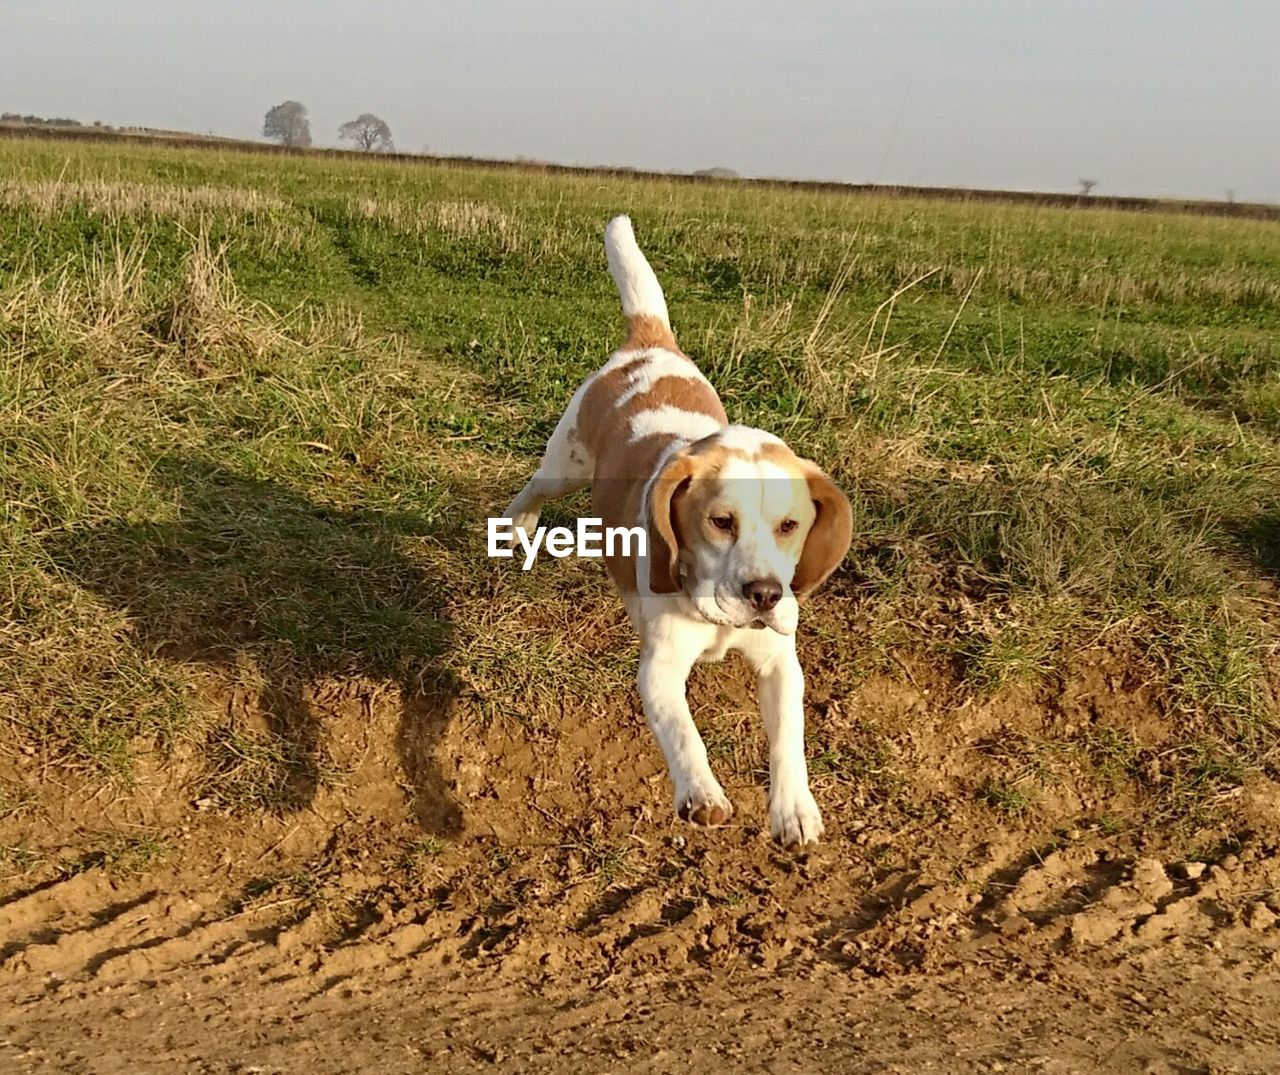 mammal, one animal, dog, canine, pets, animal themes, animal, domestic, domestic animals, vertebrate, land, field, grass, plant, nature, no people, day, landscape, environment, running